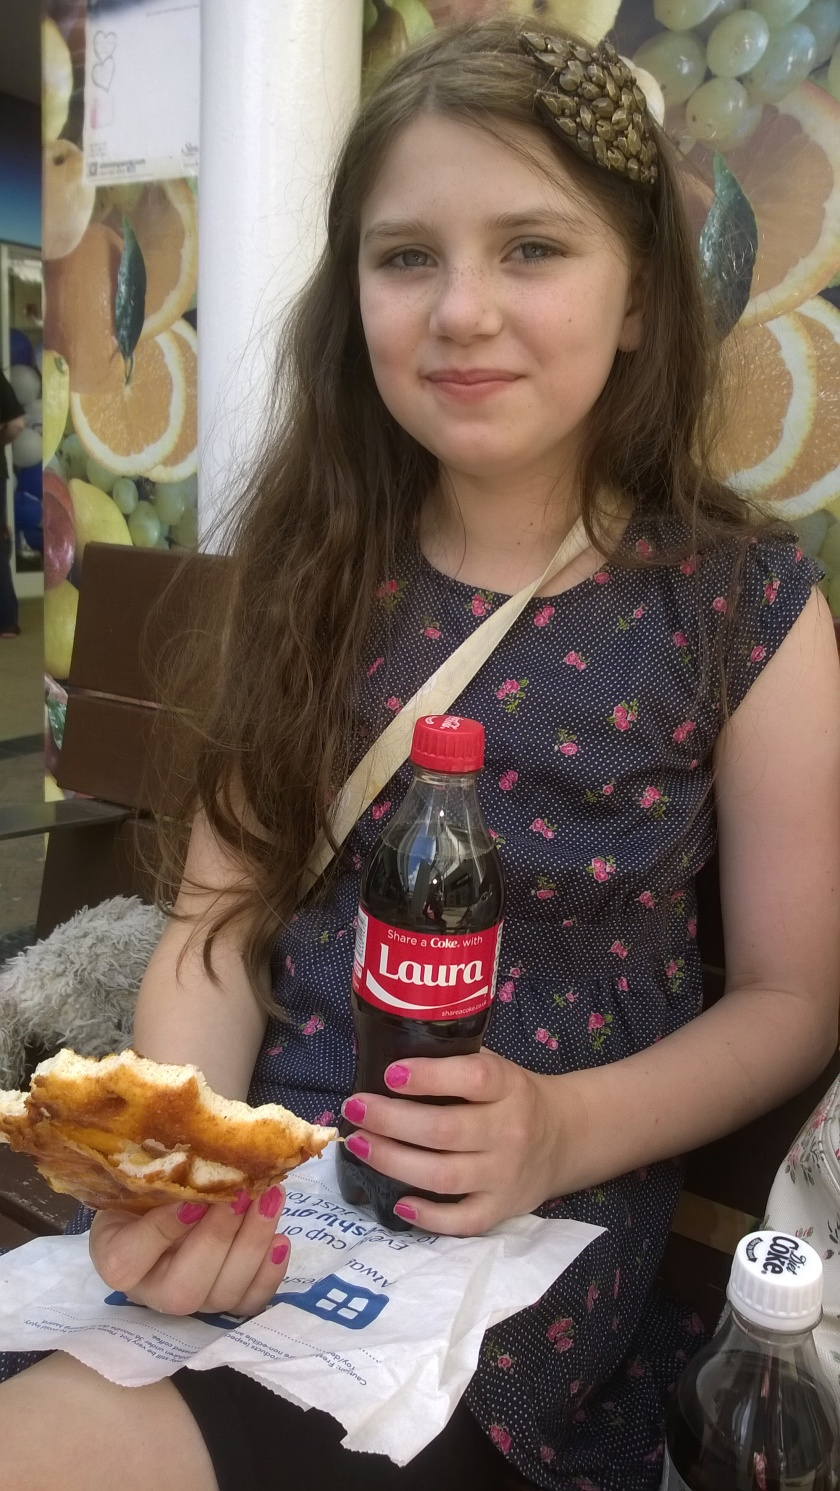 Laura with a bottle of Coke